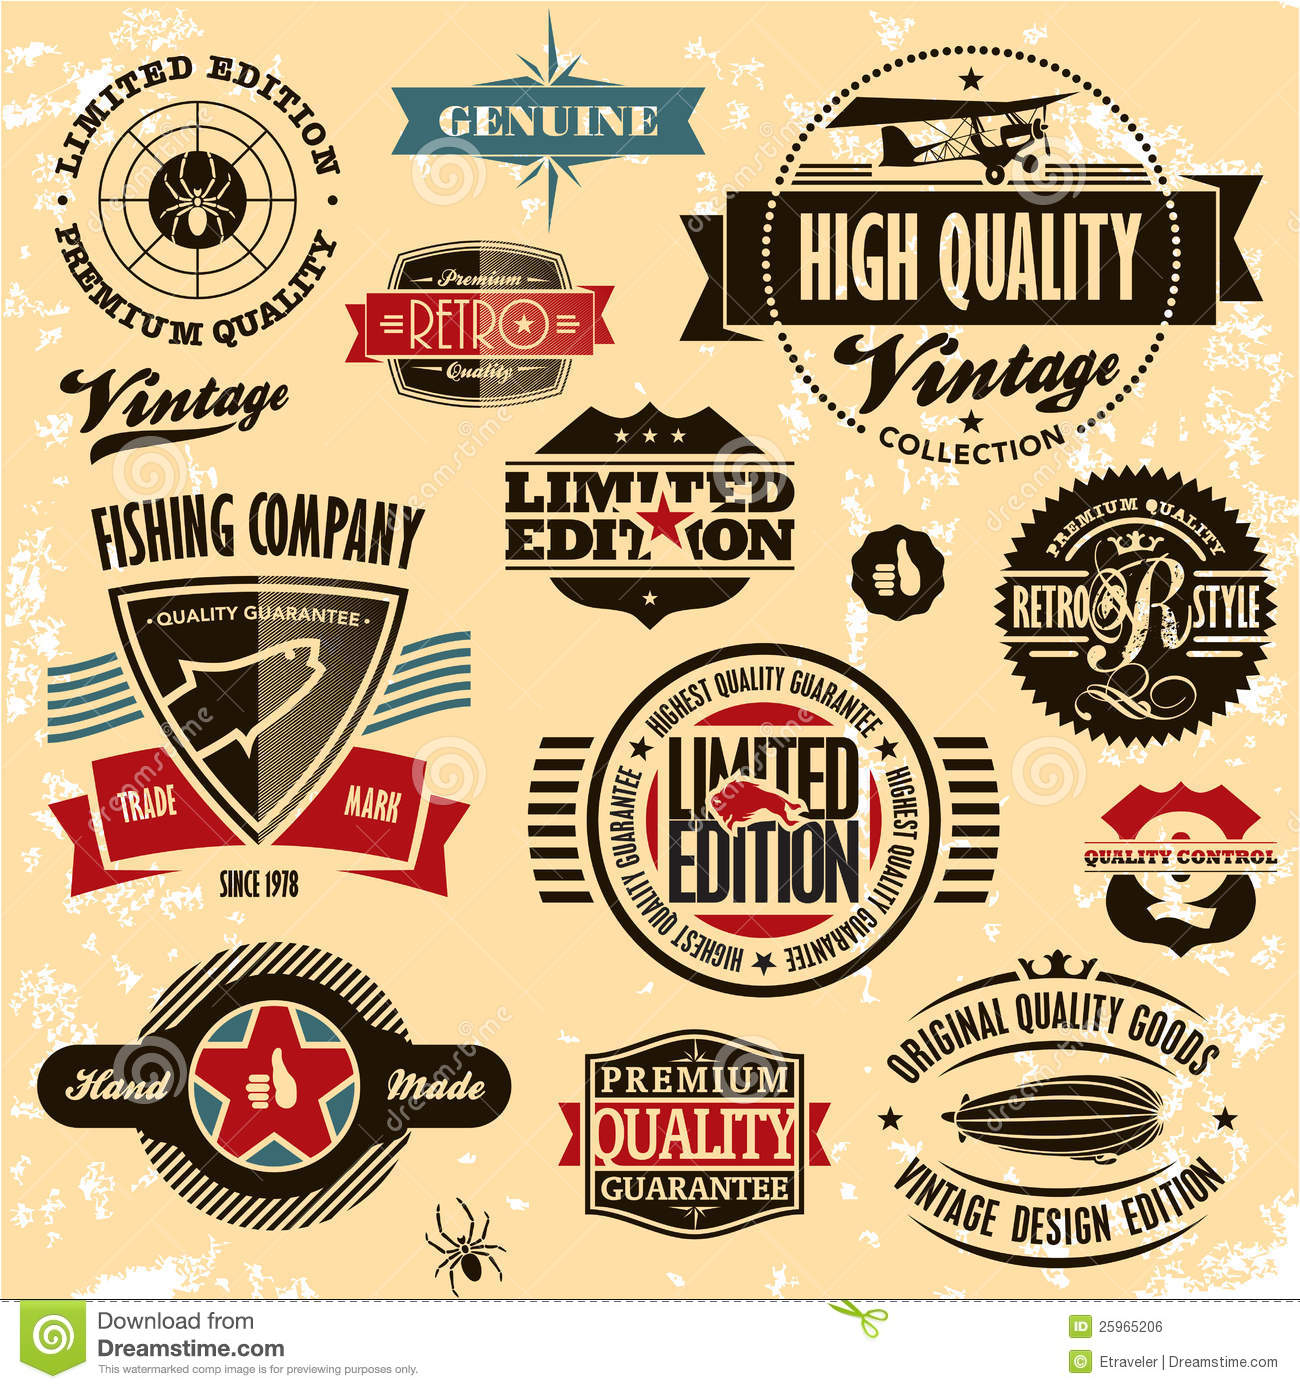 Best Car Warranty >> Retro Style Labels And Badges Vintage Collection. Royalty ...